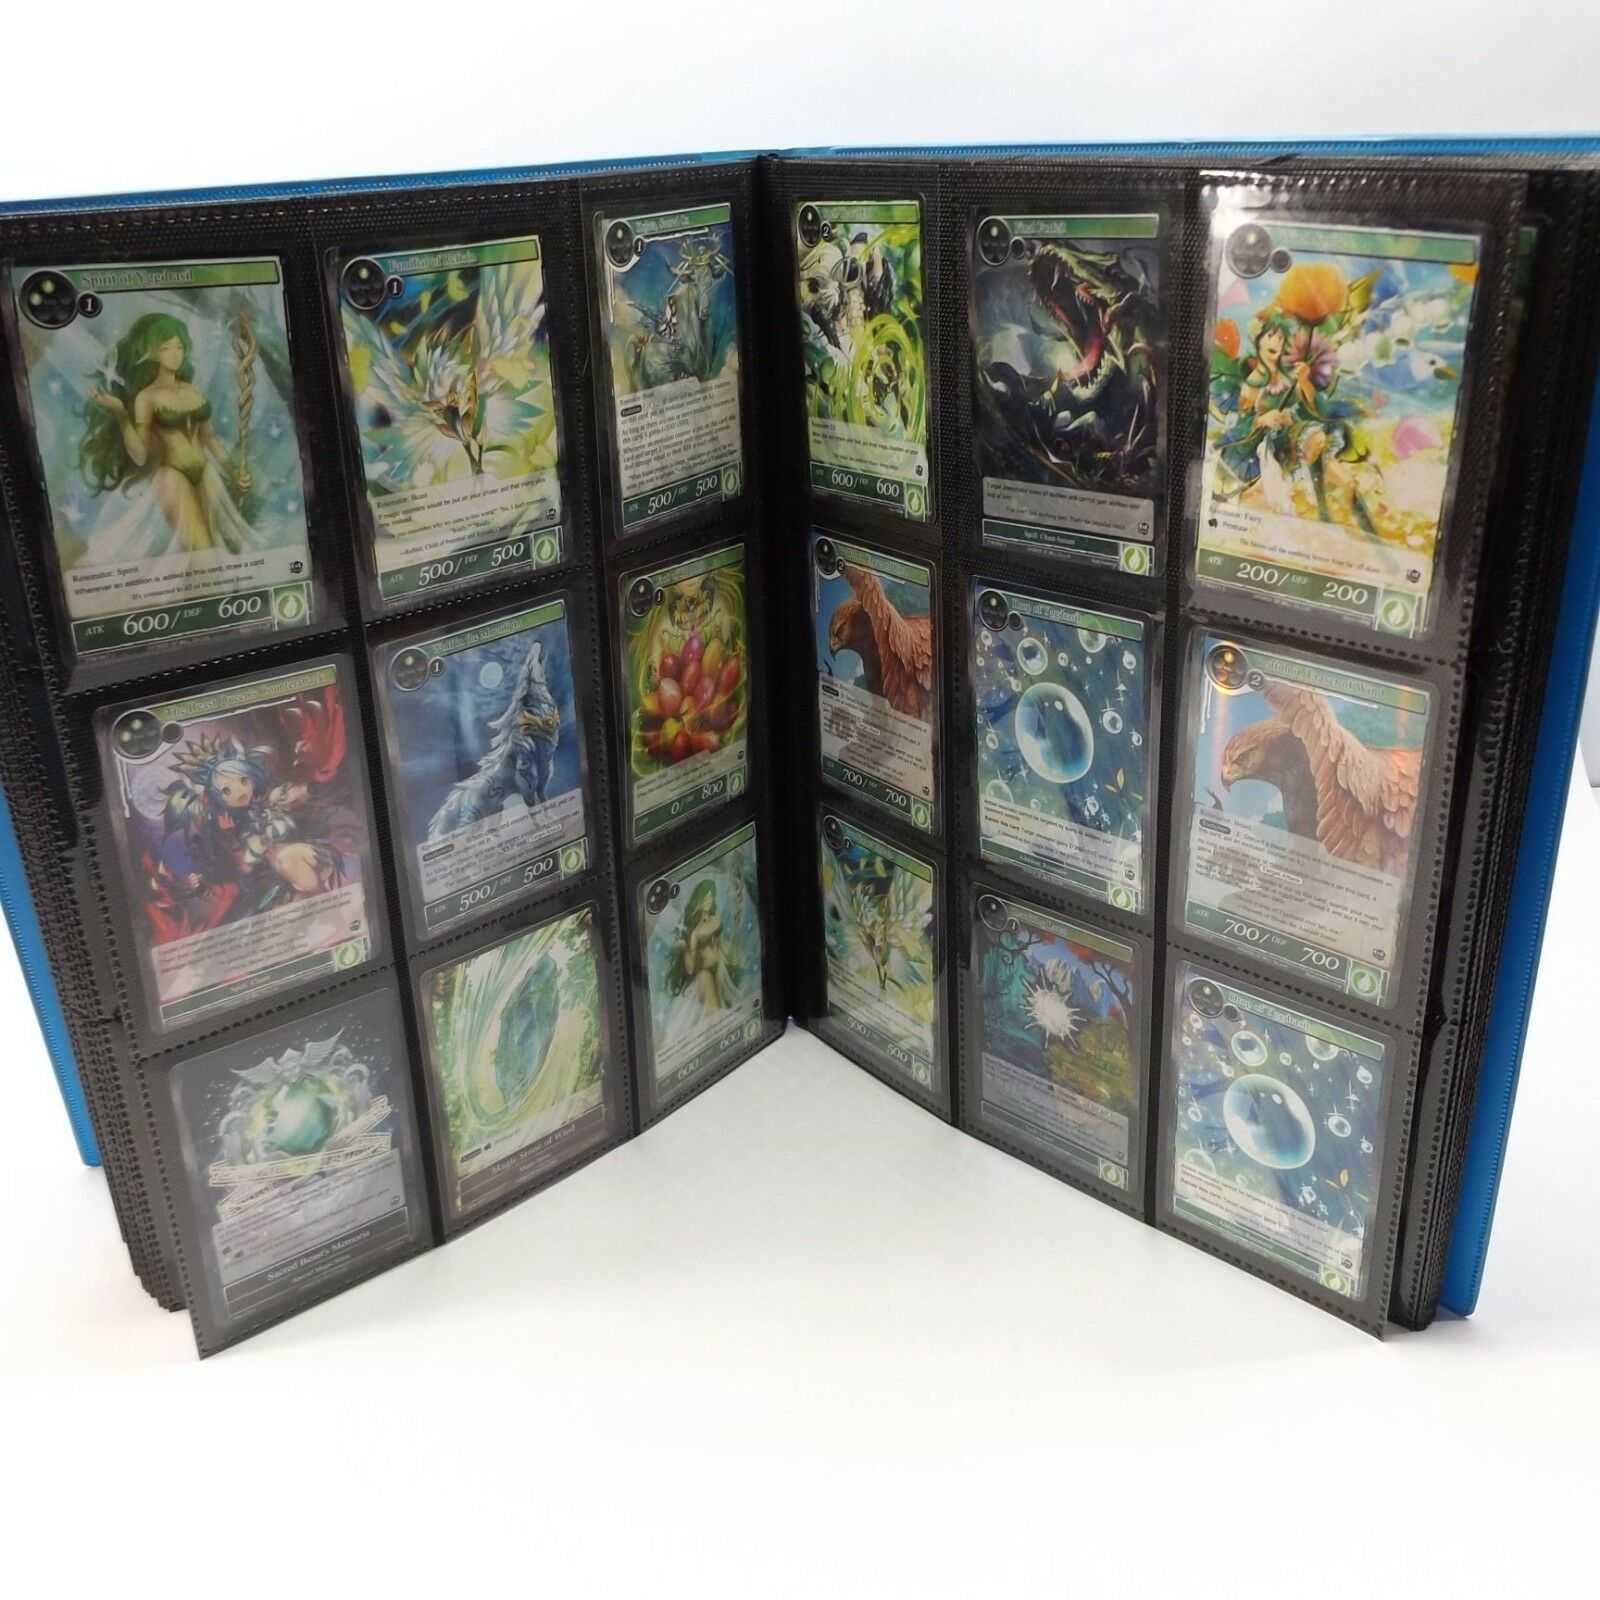 BOOK OF 288 PLUS PLUS PLUS FORCE OF WILL GAME CARDS IN PredECTIVE SLEEVES 3752ee